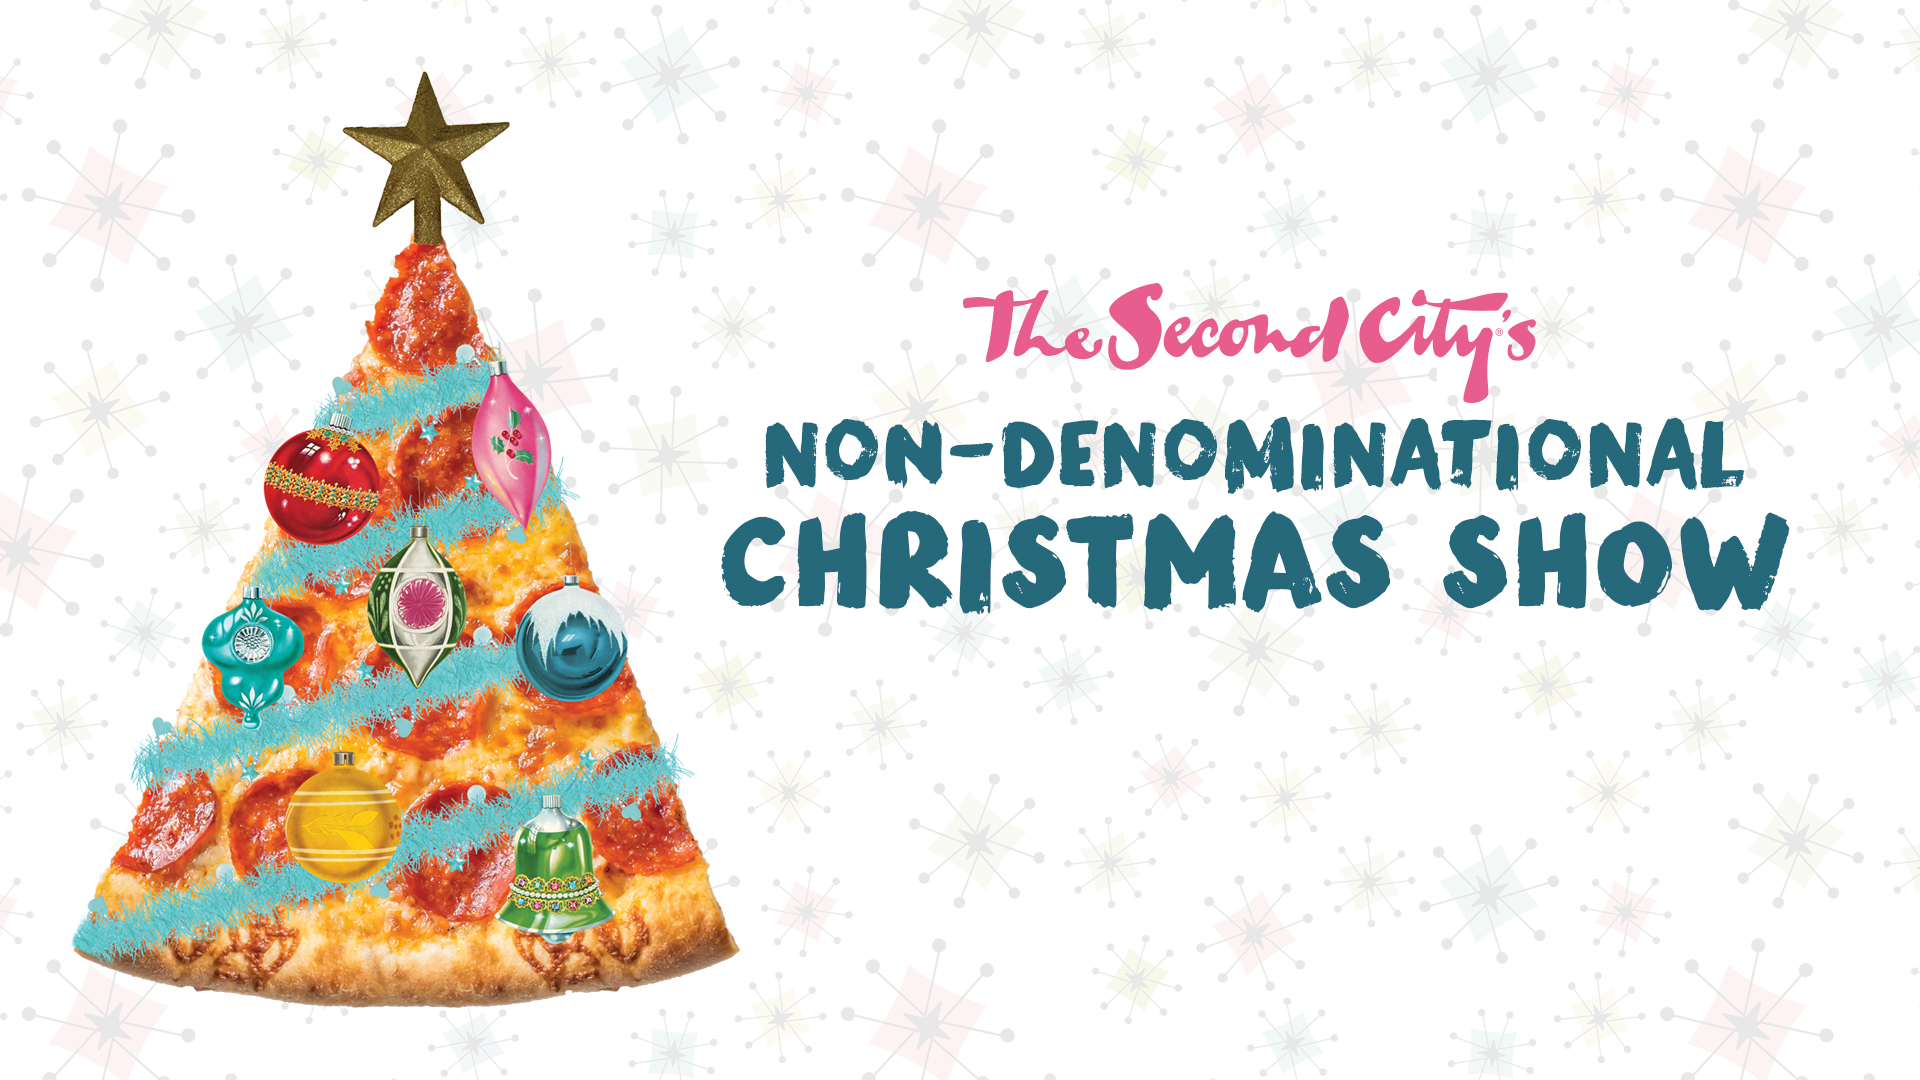 The Second City\'s Non-Denominational Christmas Show - The Second City